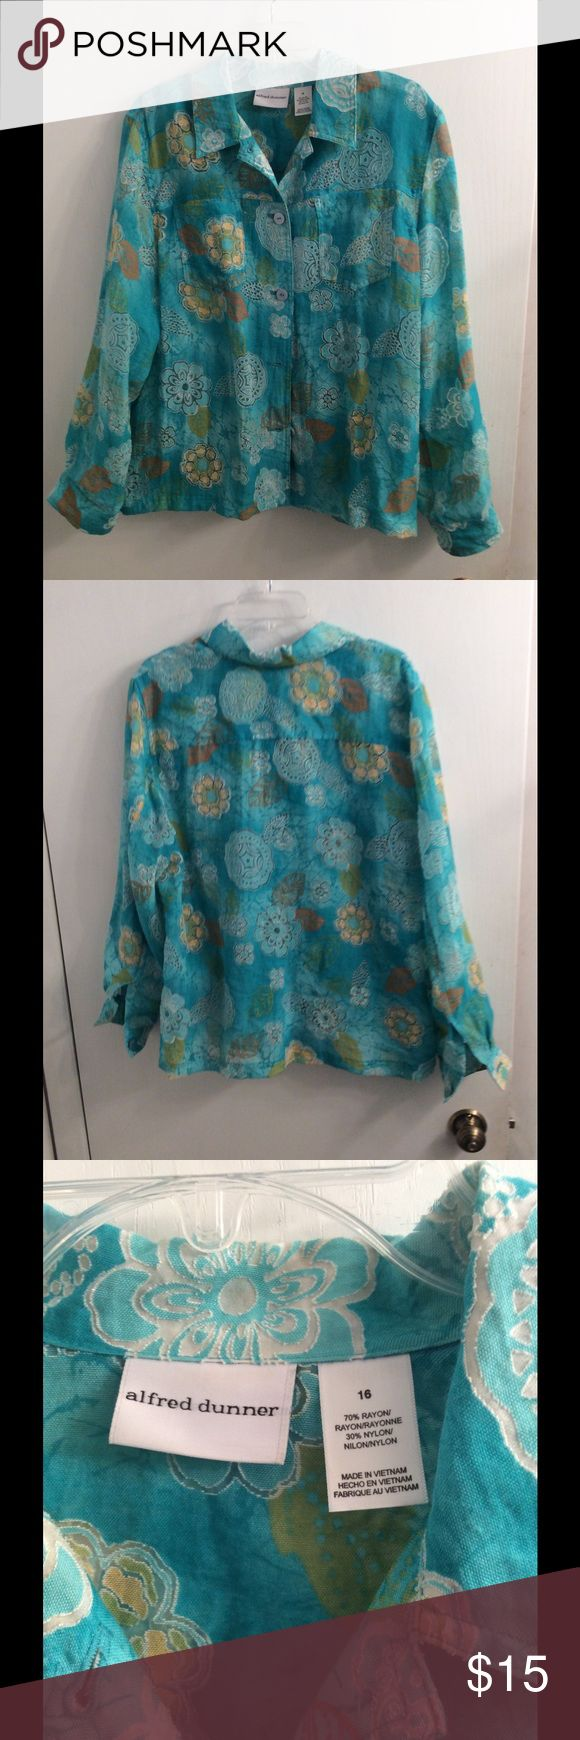 Summer Top Light Jacket Very pretty. Looks wonderful with white or colored tank. Alfred Dunner Tops Button Down Shirts